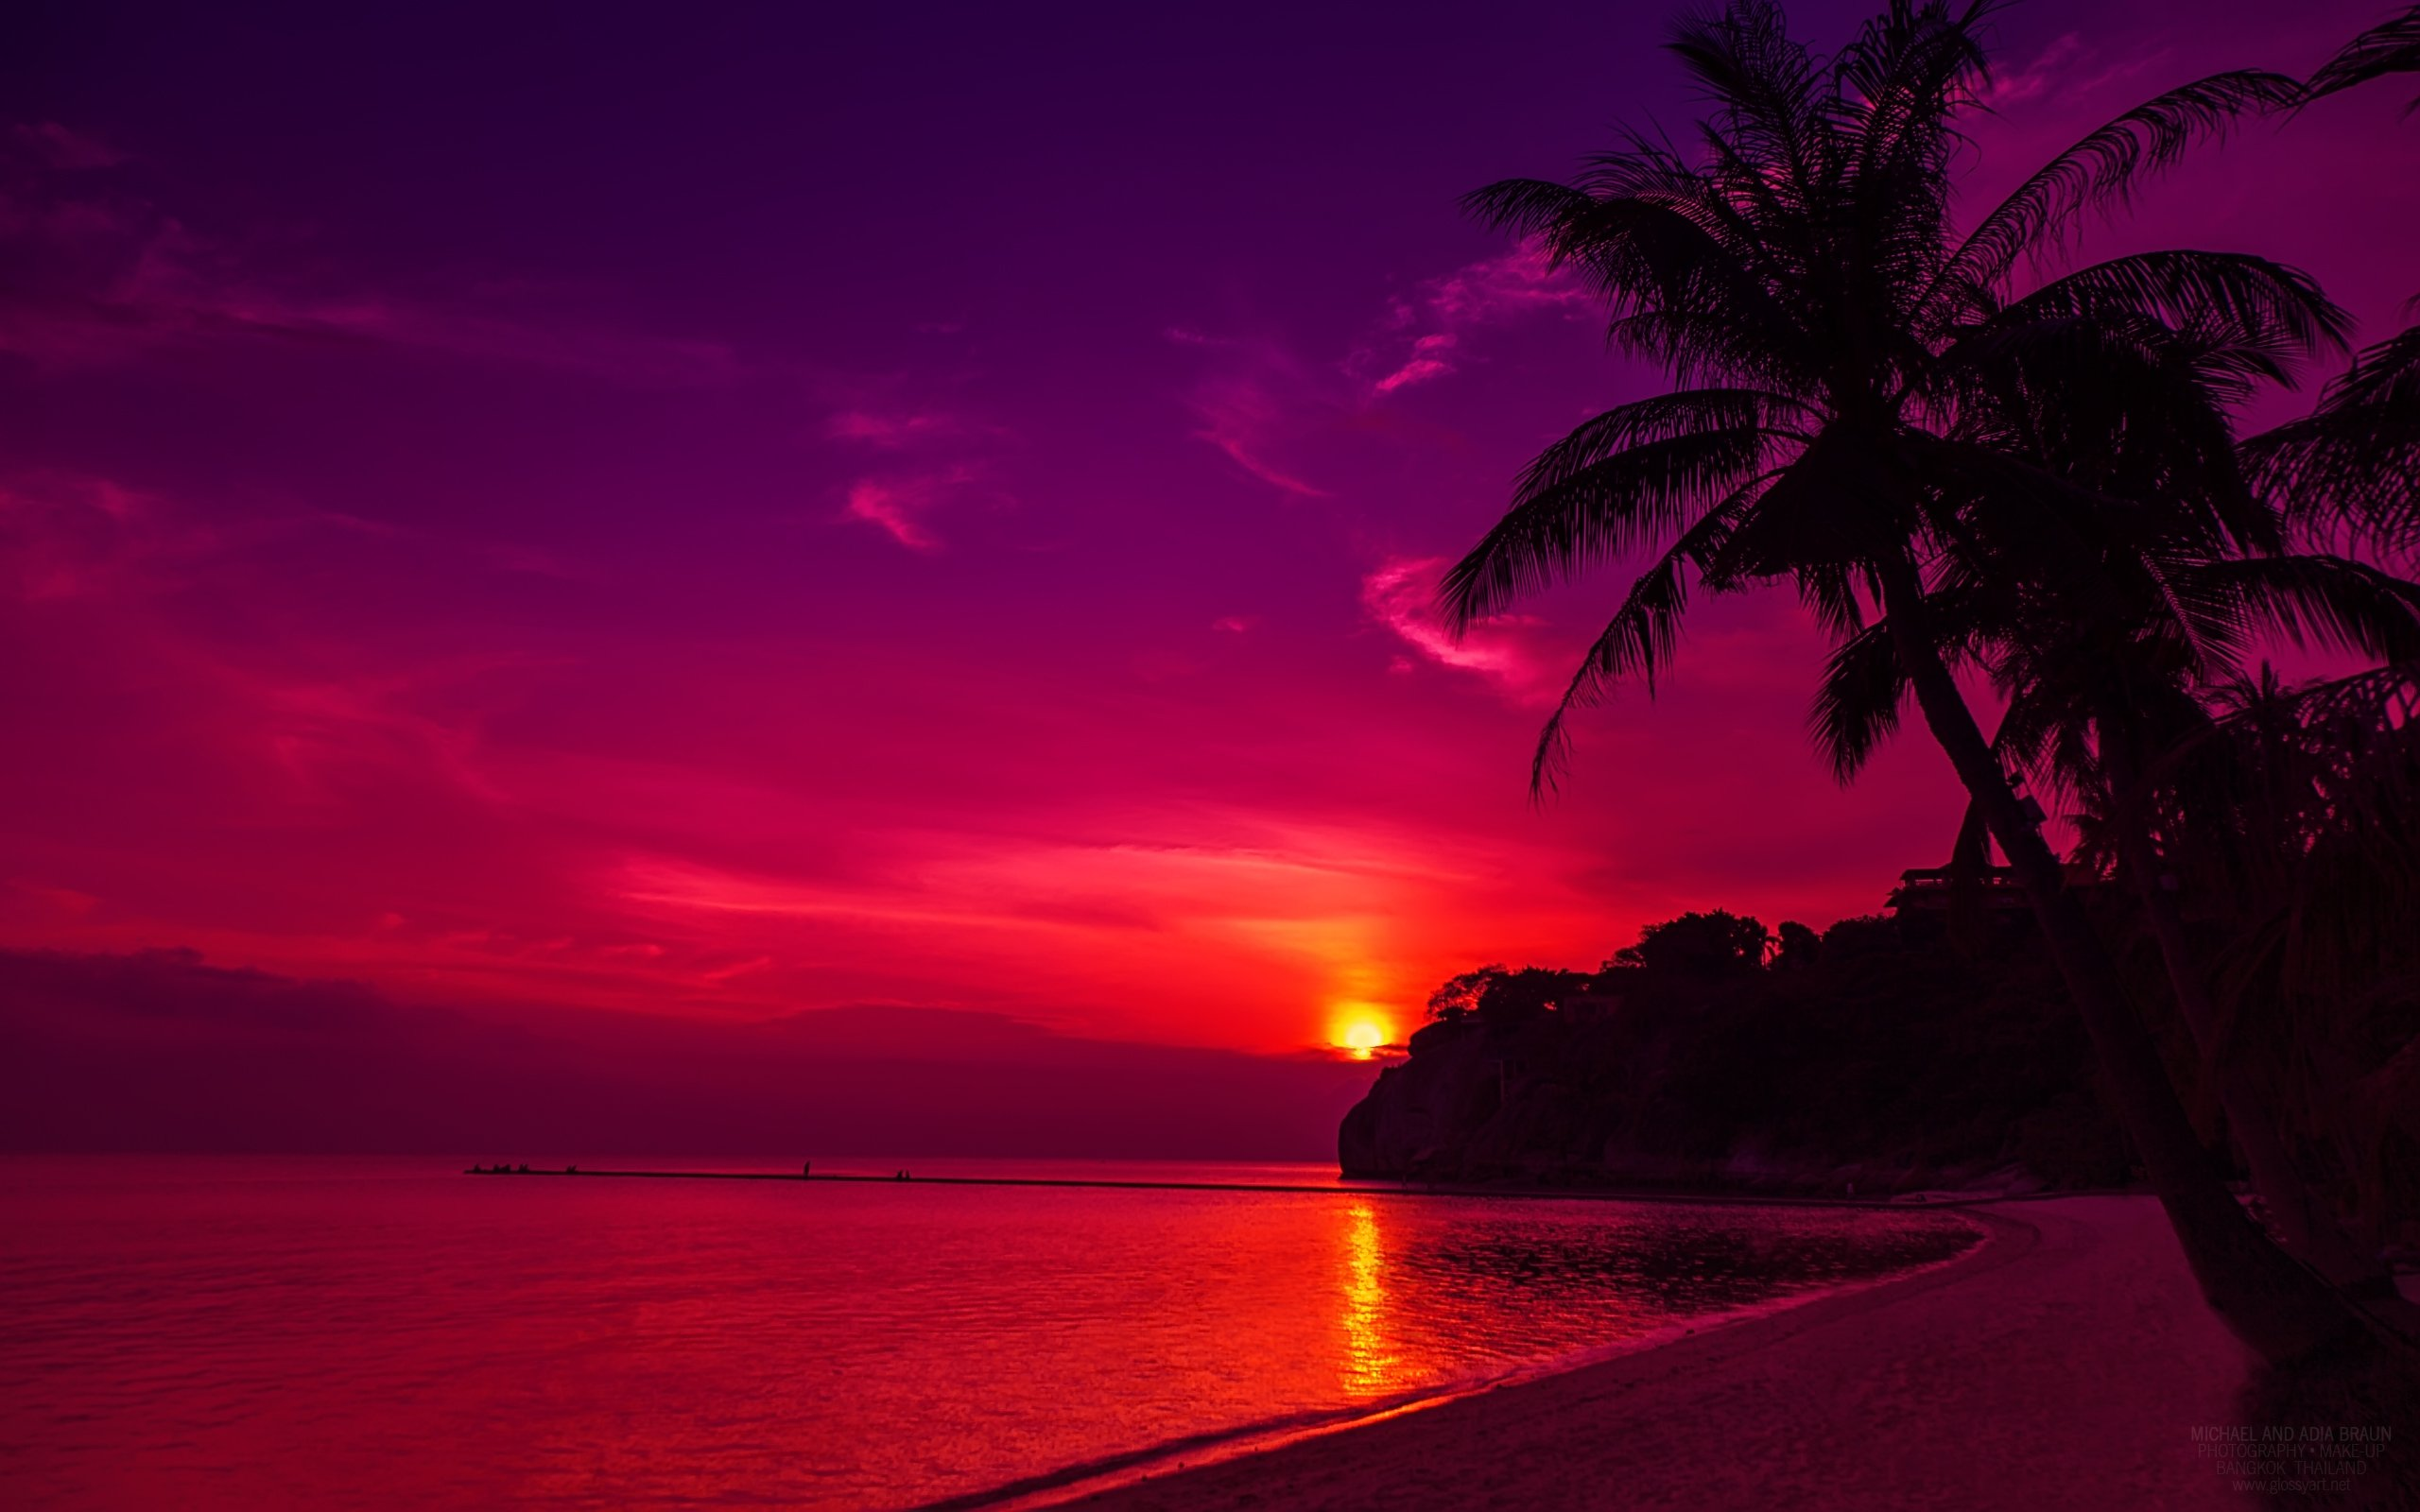 Thailand Beach Sunset Wallpapers HD Wallpapers 2560x1600